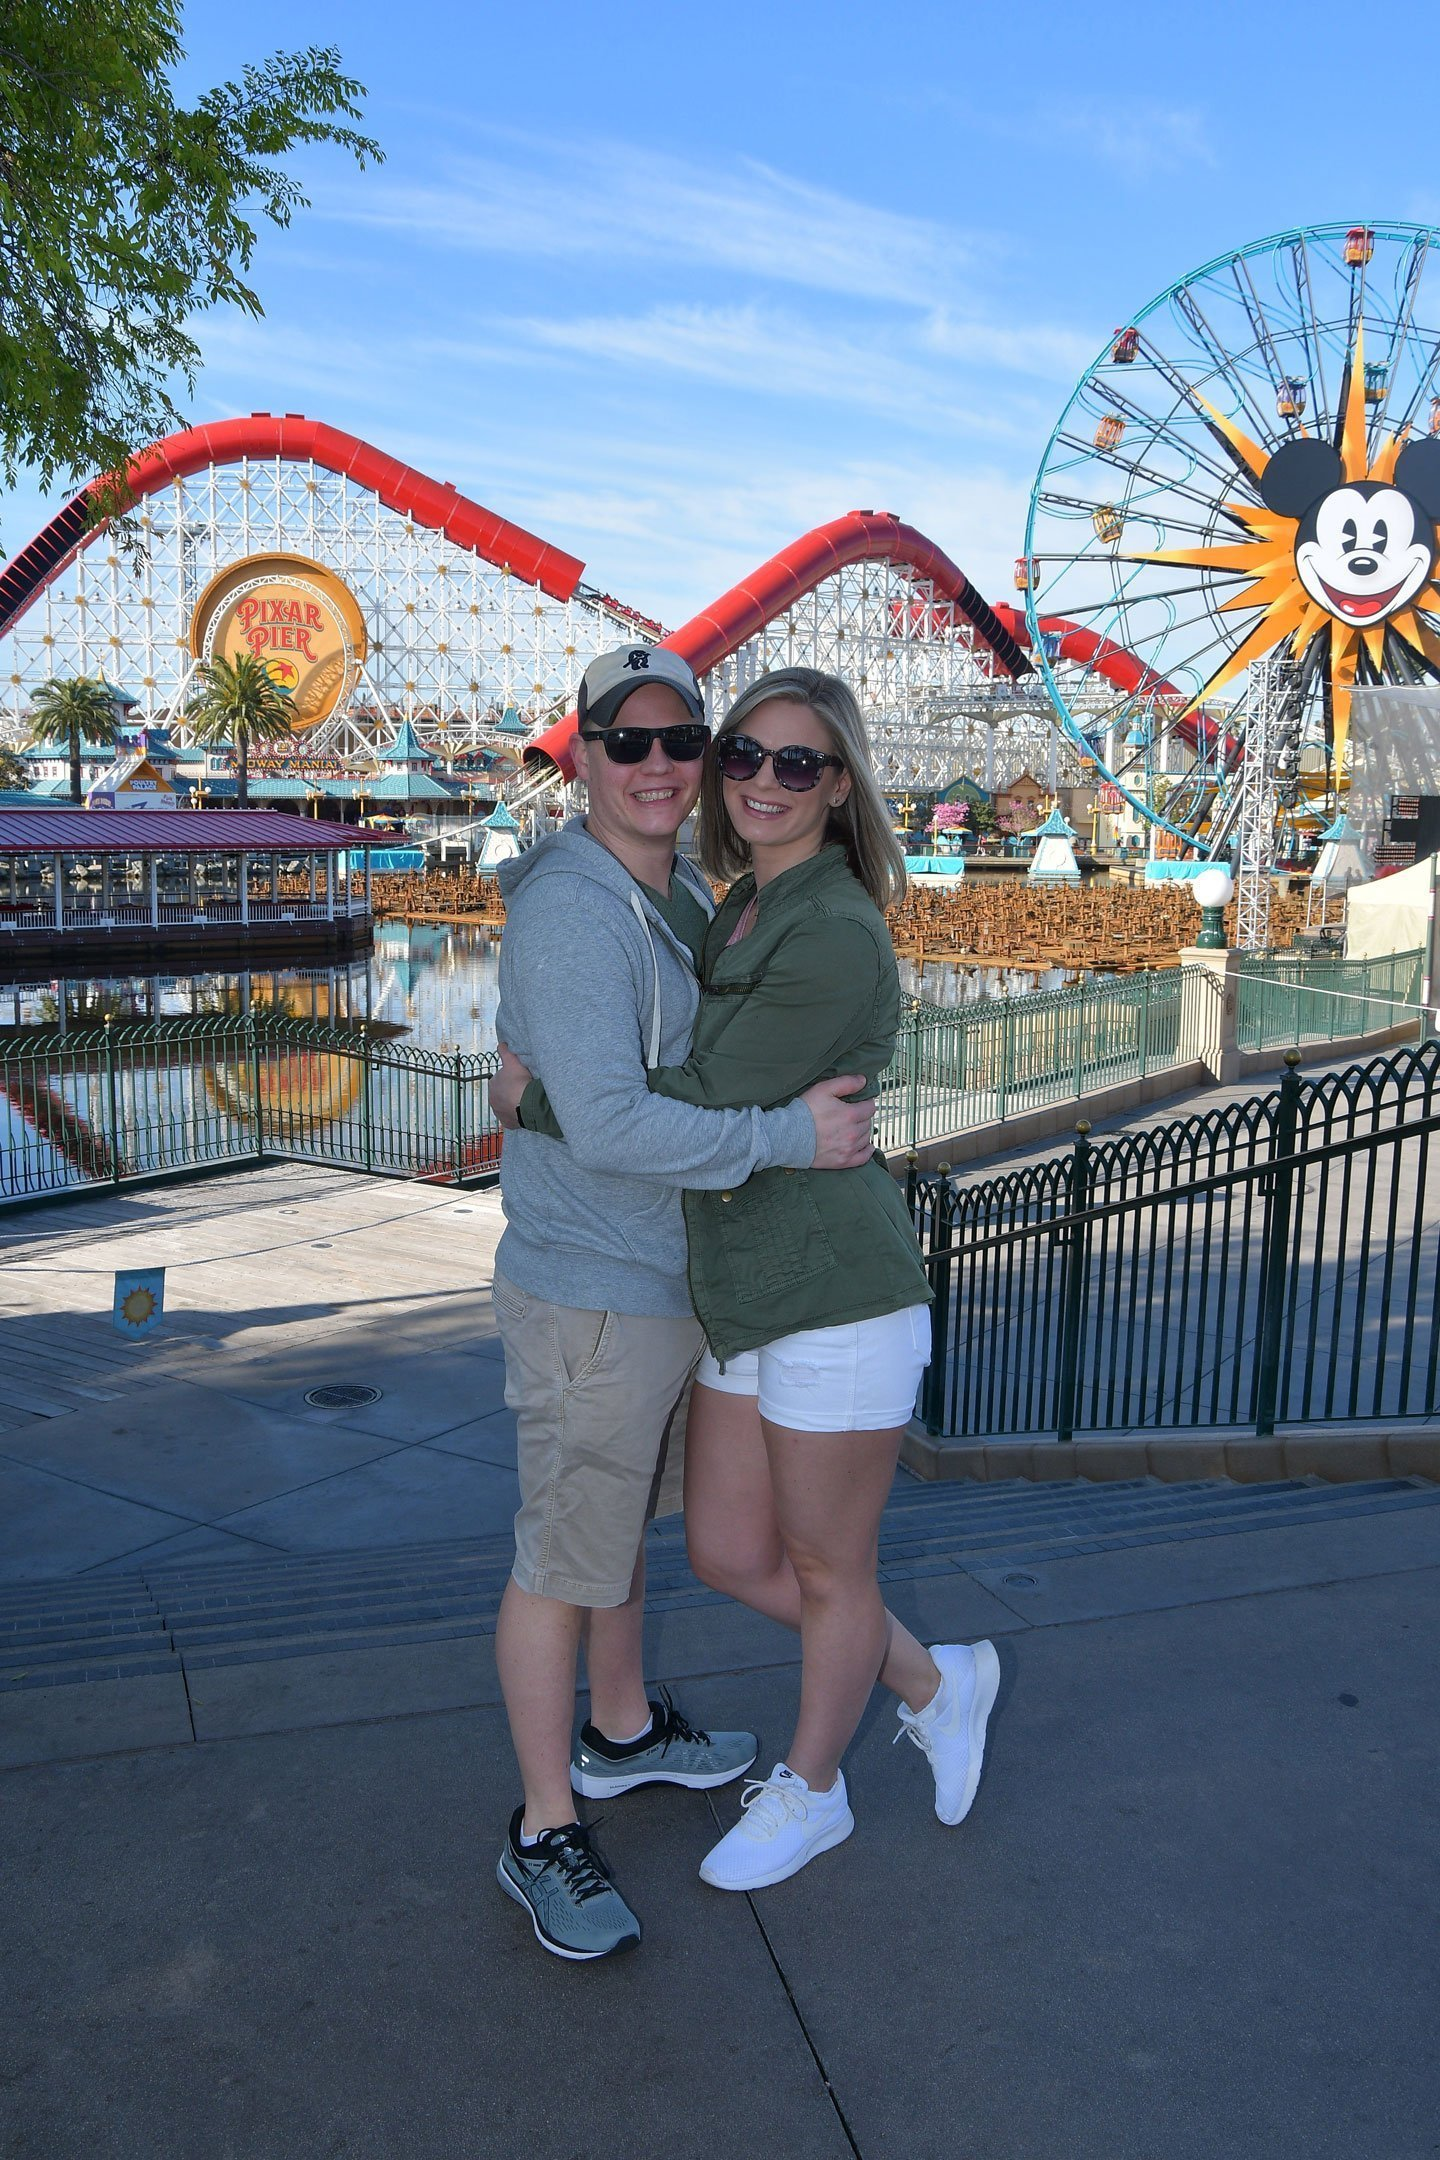 Disney California Adventure Park Pier - MaxPass photo